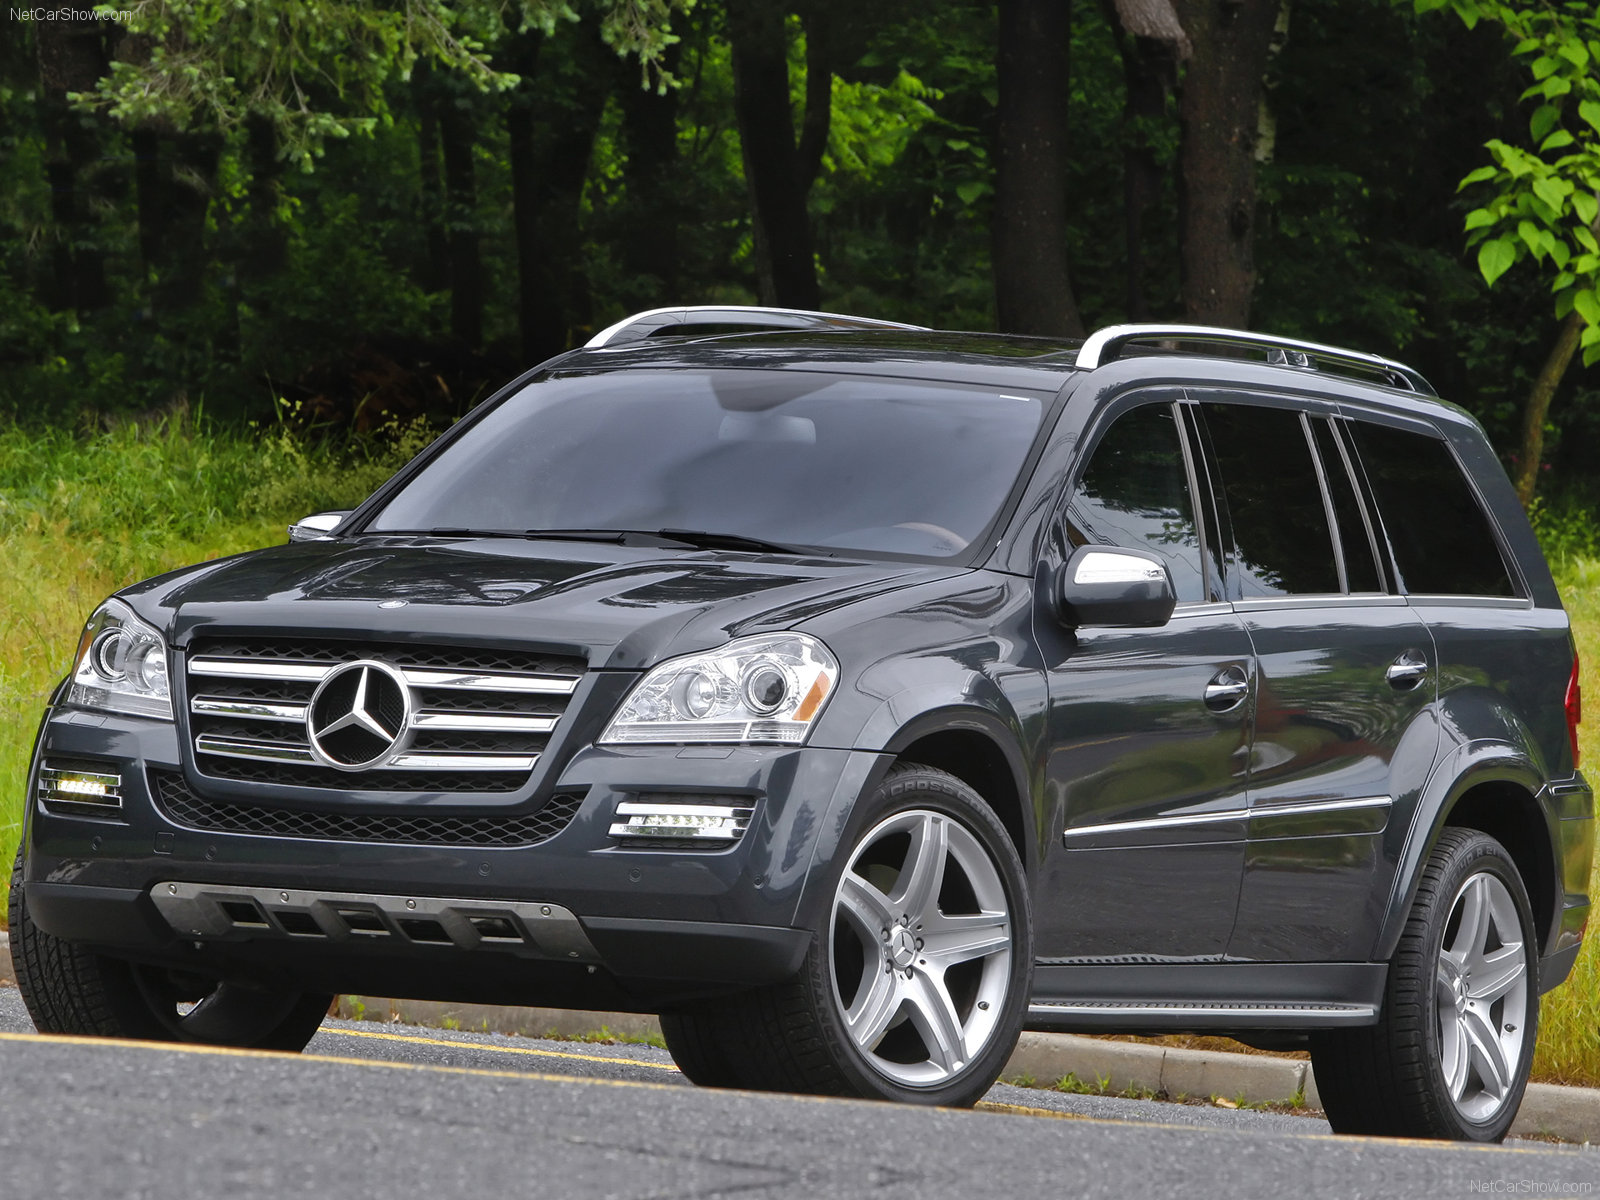 3dtuning of mercedes gl class suv 2010 for Mercedes benz gl450 suv